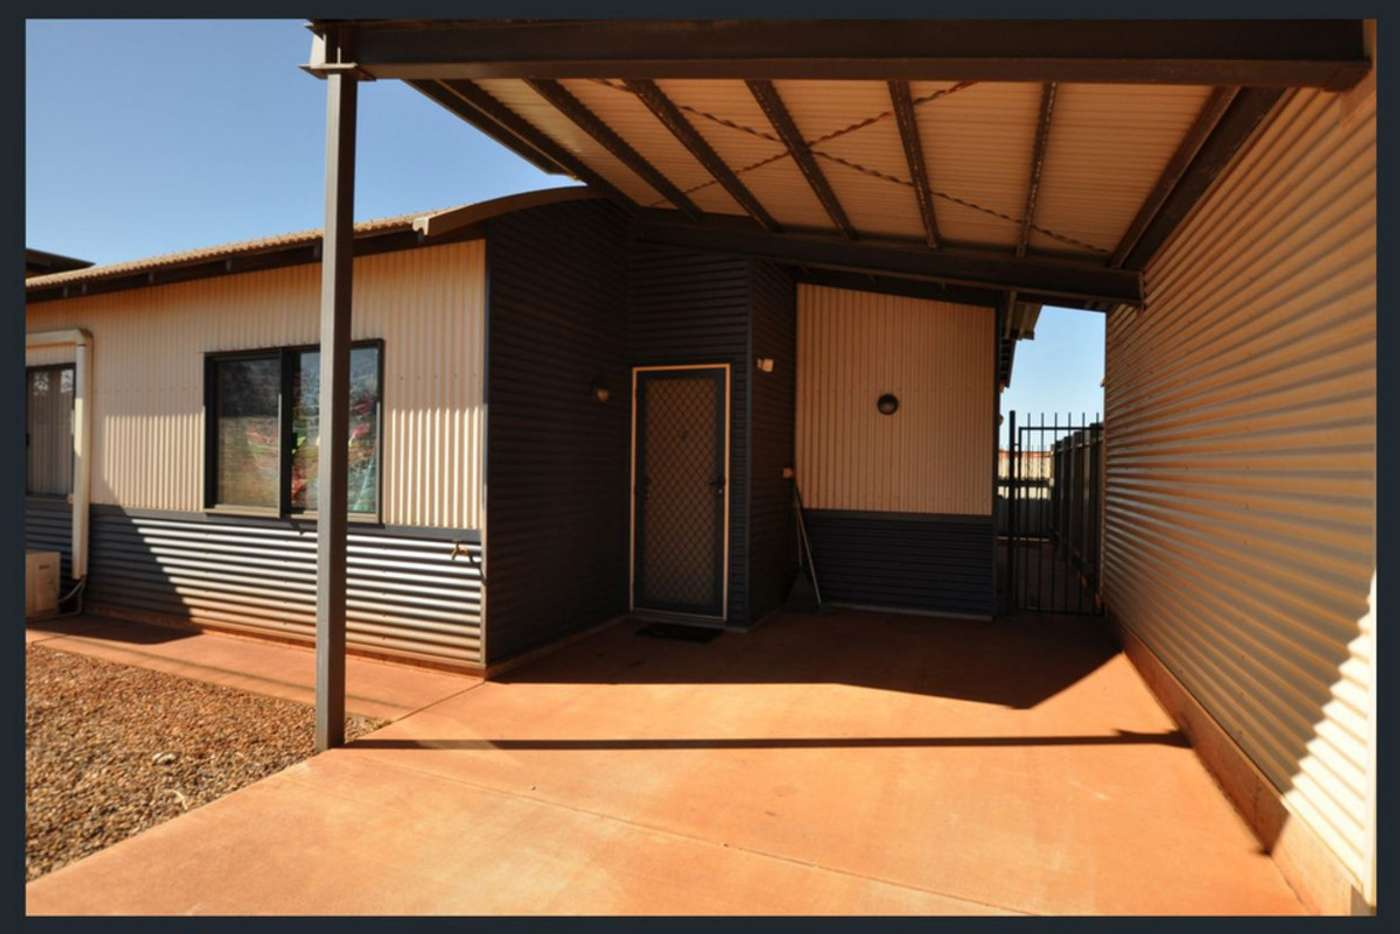 Main view of Homely apartment listing, 4/32 Kingsmill Street, Port Hedland WA 6721